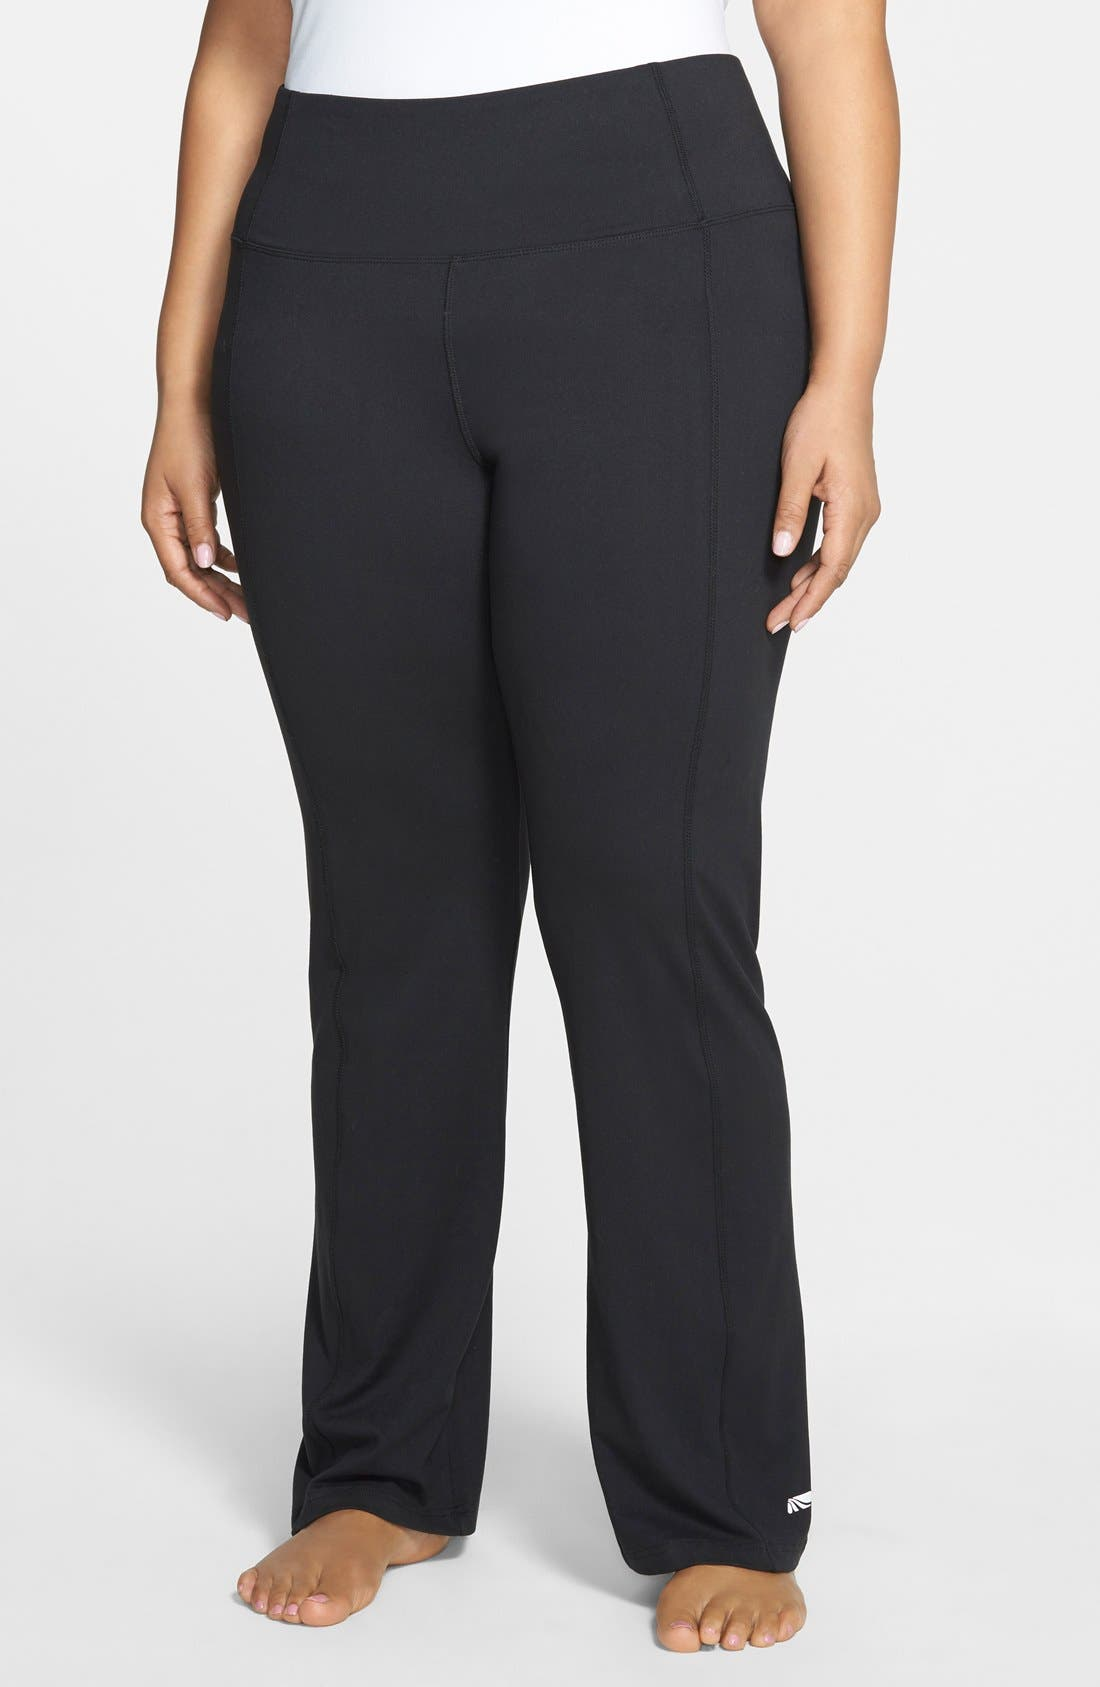 Marika Curves High Rise Control Top Bootcut Pants (Plus Size)